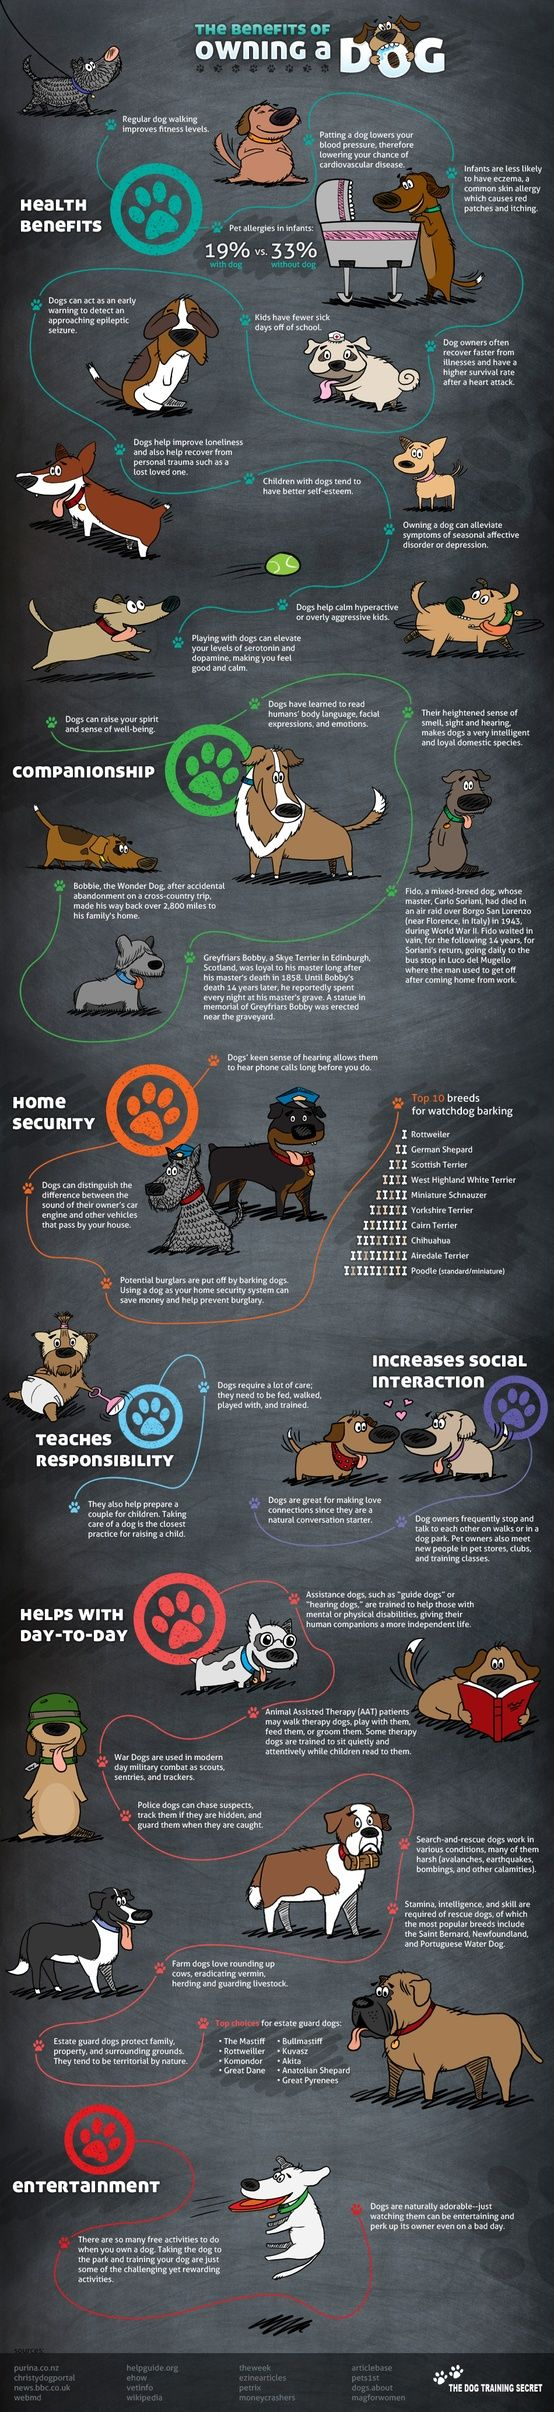 The benefits of owning a dog. For more visit http://www.dogspot.in/